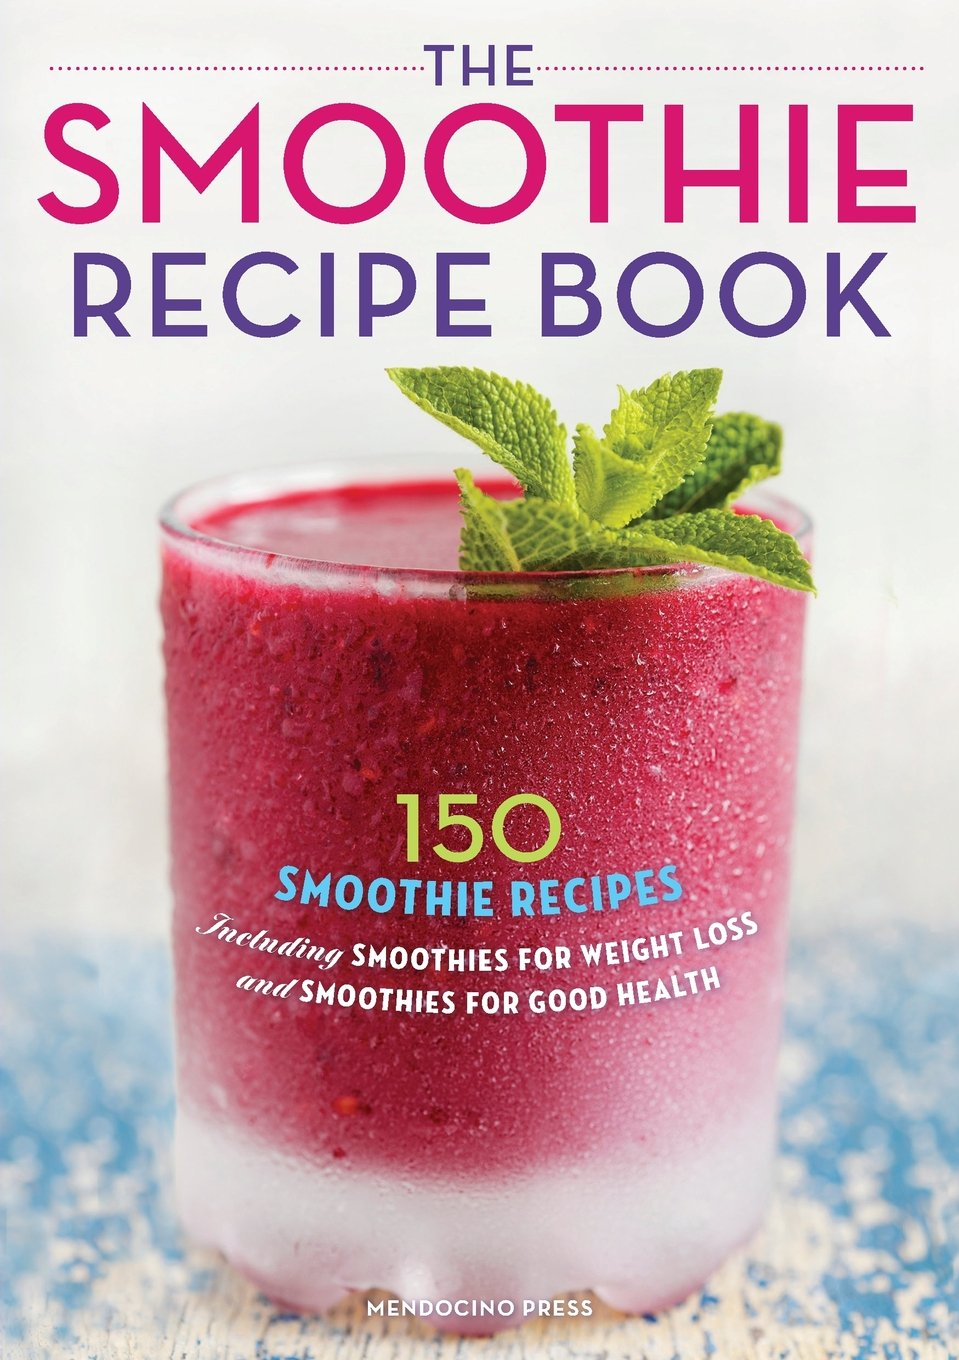 The Smoothie Recipe Book 150 Smoothie Recipes Including Smoothies For Weight Loss And Smoothies For Good Health Mendocino Press 8601200680447 Amazon Com Books